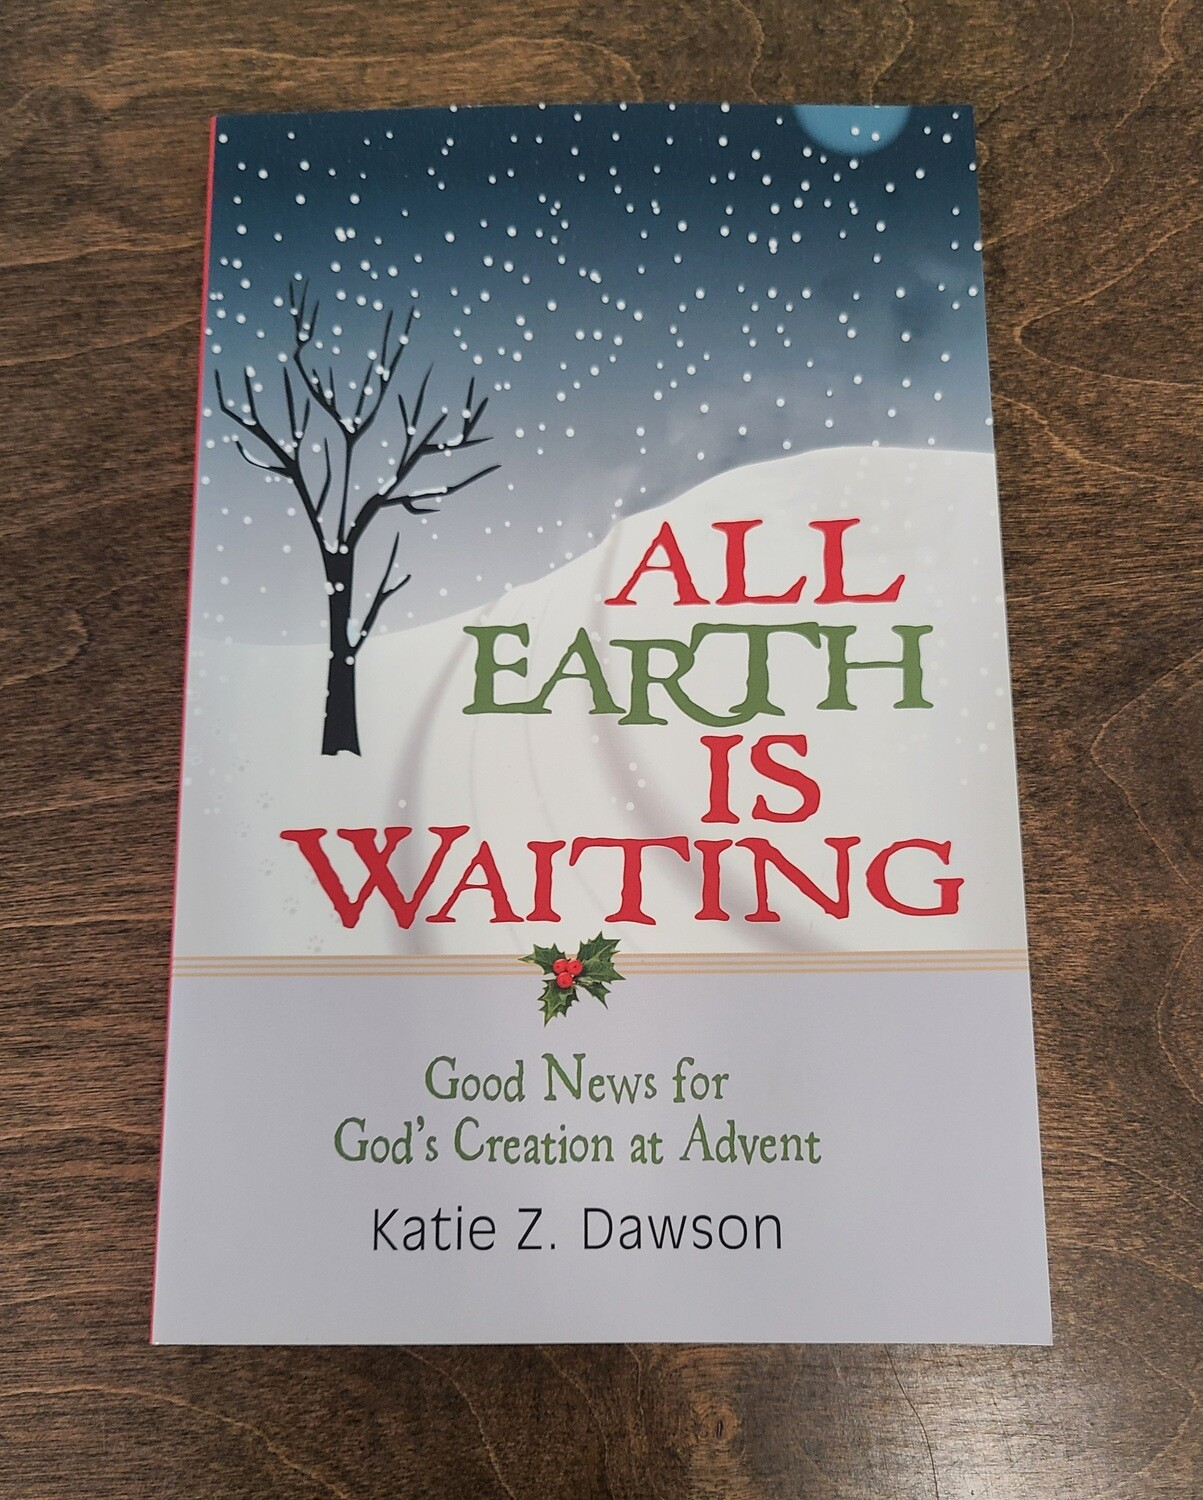 All Earth is Waiting by Katie Z. Dawson